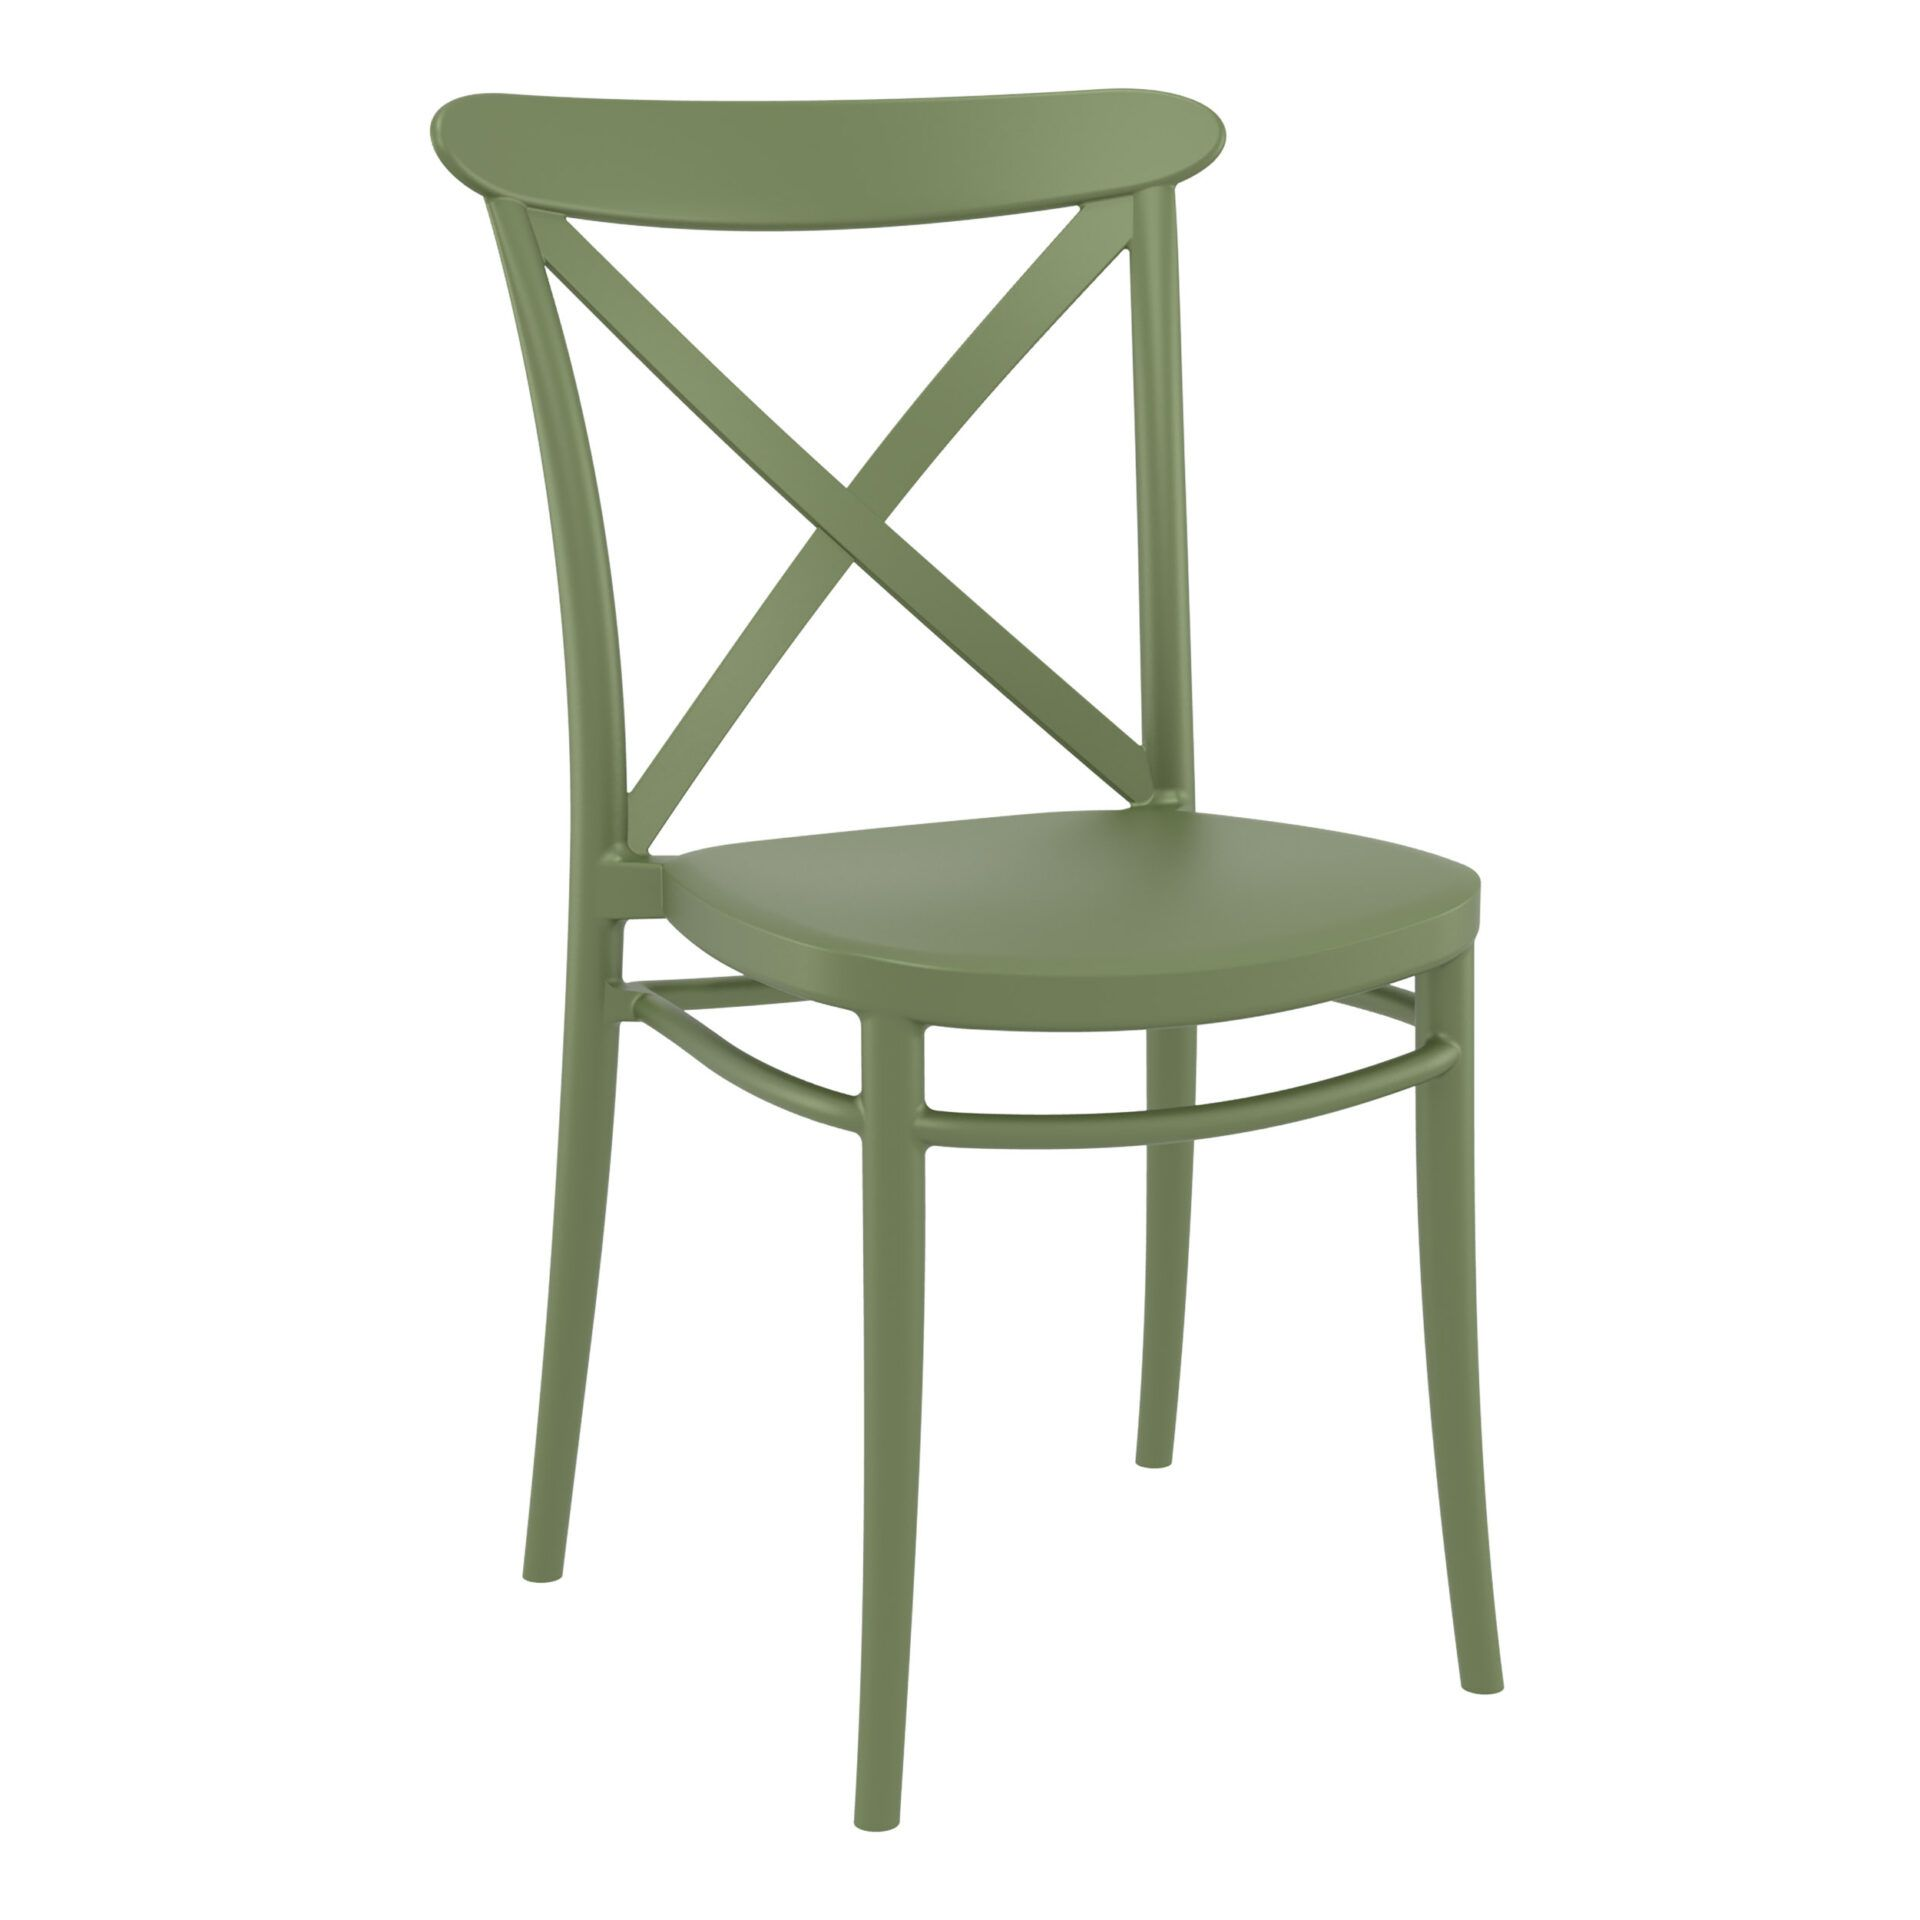 cafe polypropylene cross chair olive green front side